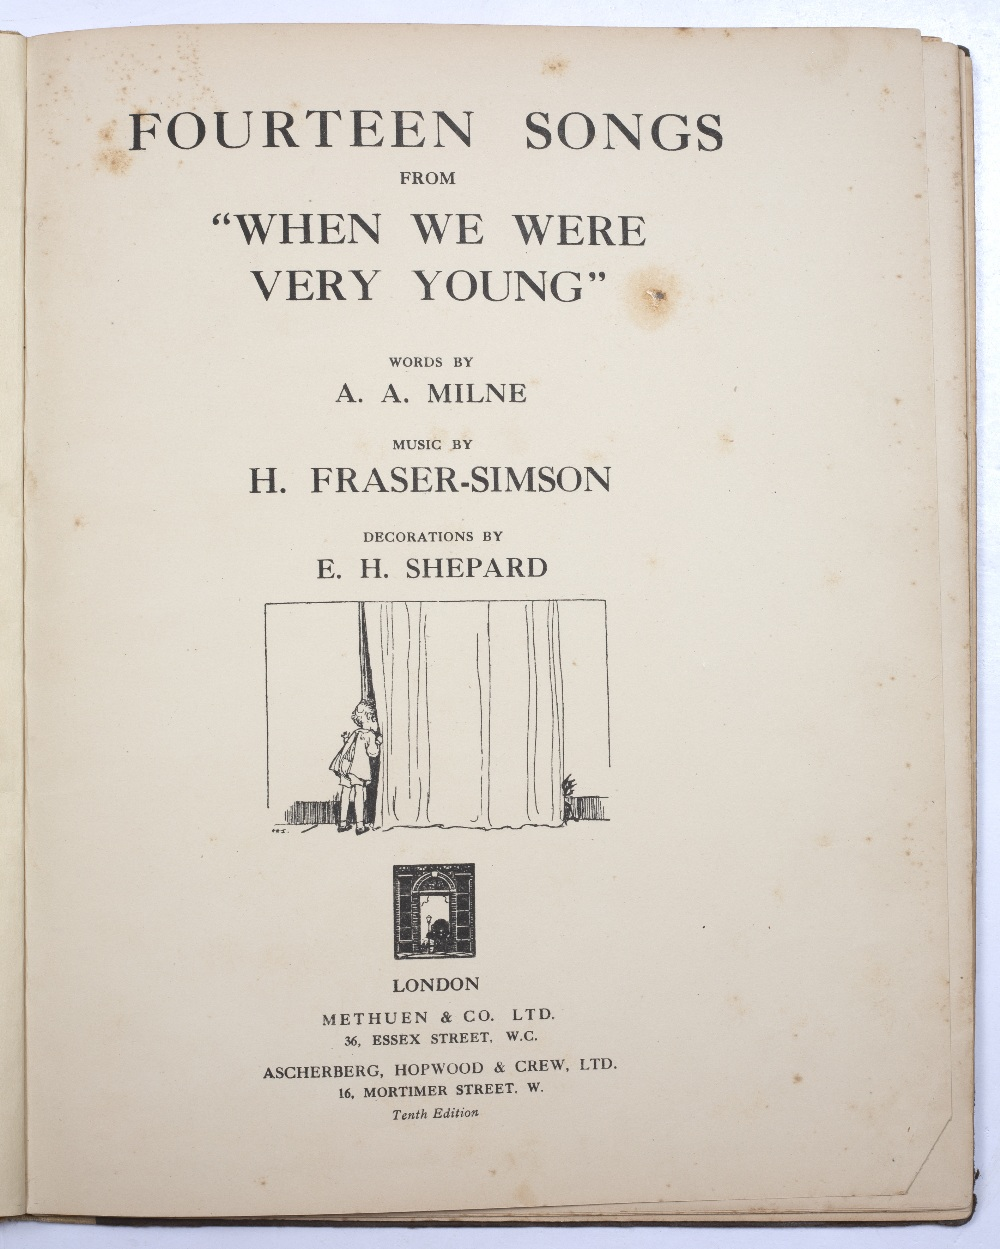 MILNE, A.A. 'Fourteen Songs from When We Were Very Young' music by H Fraser-Simson, E.H. Shephard. - Image 2 of 3